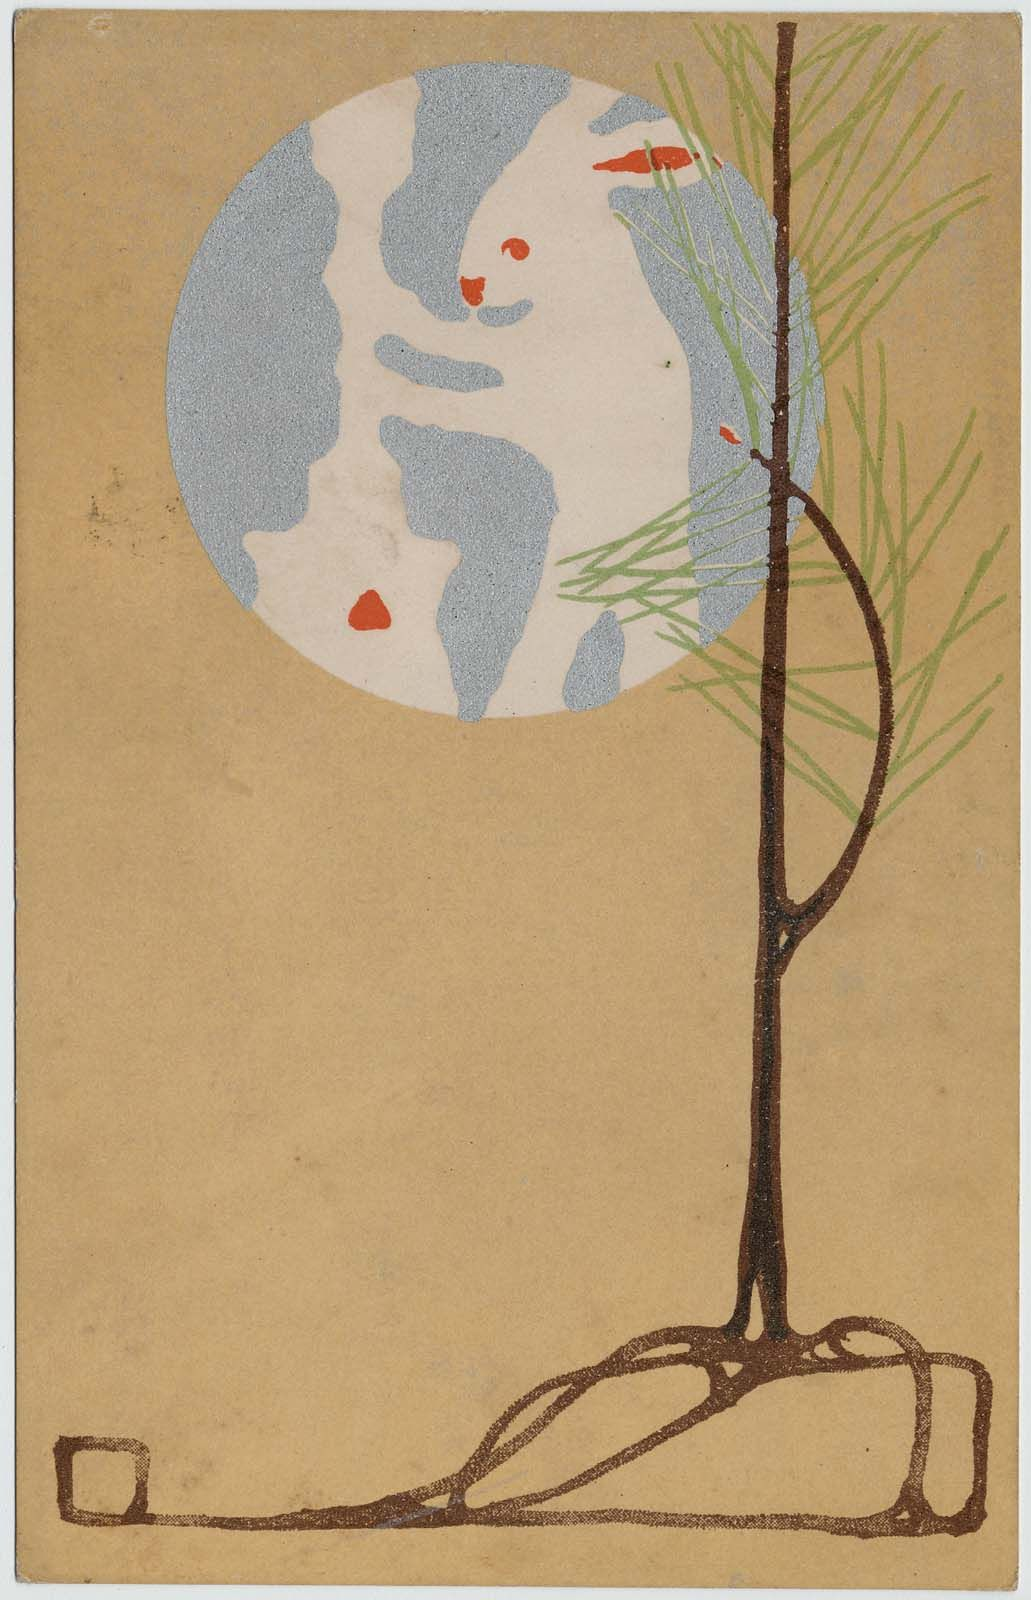 New Year's Card: Rabbit in the Moon | Museum of Fine Arts, Boston